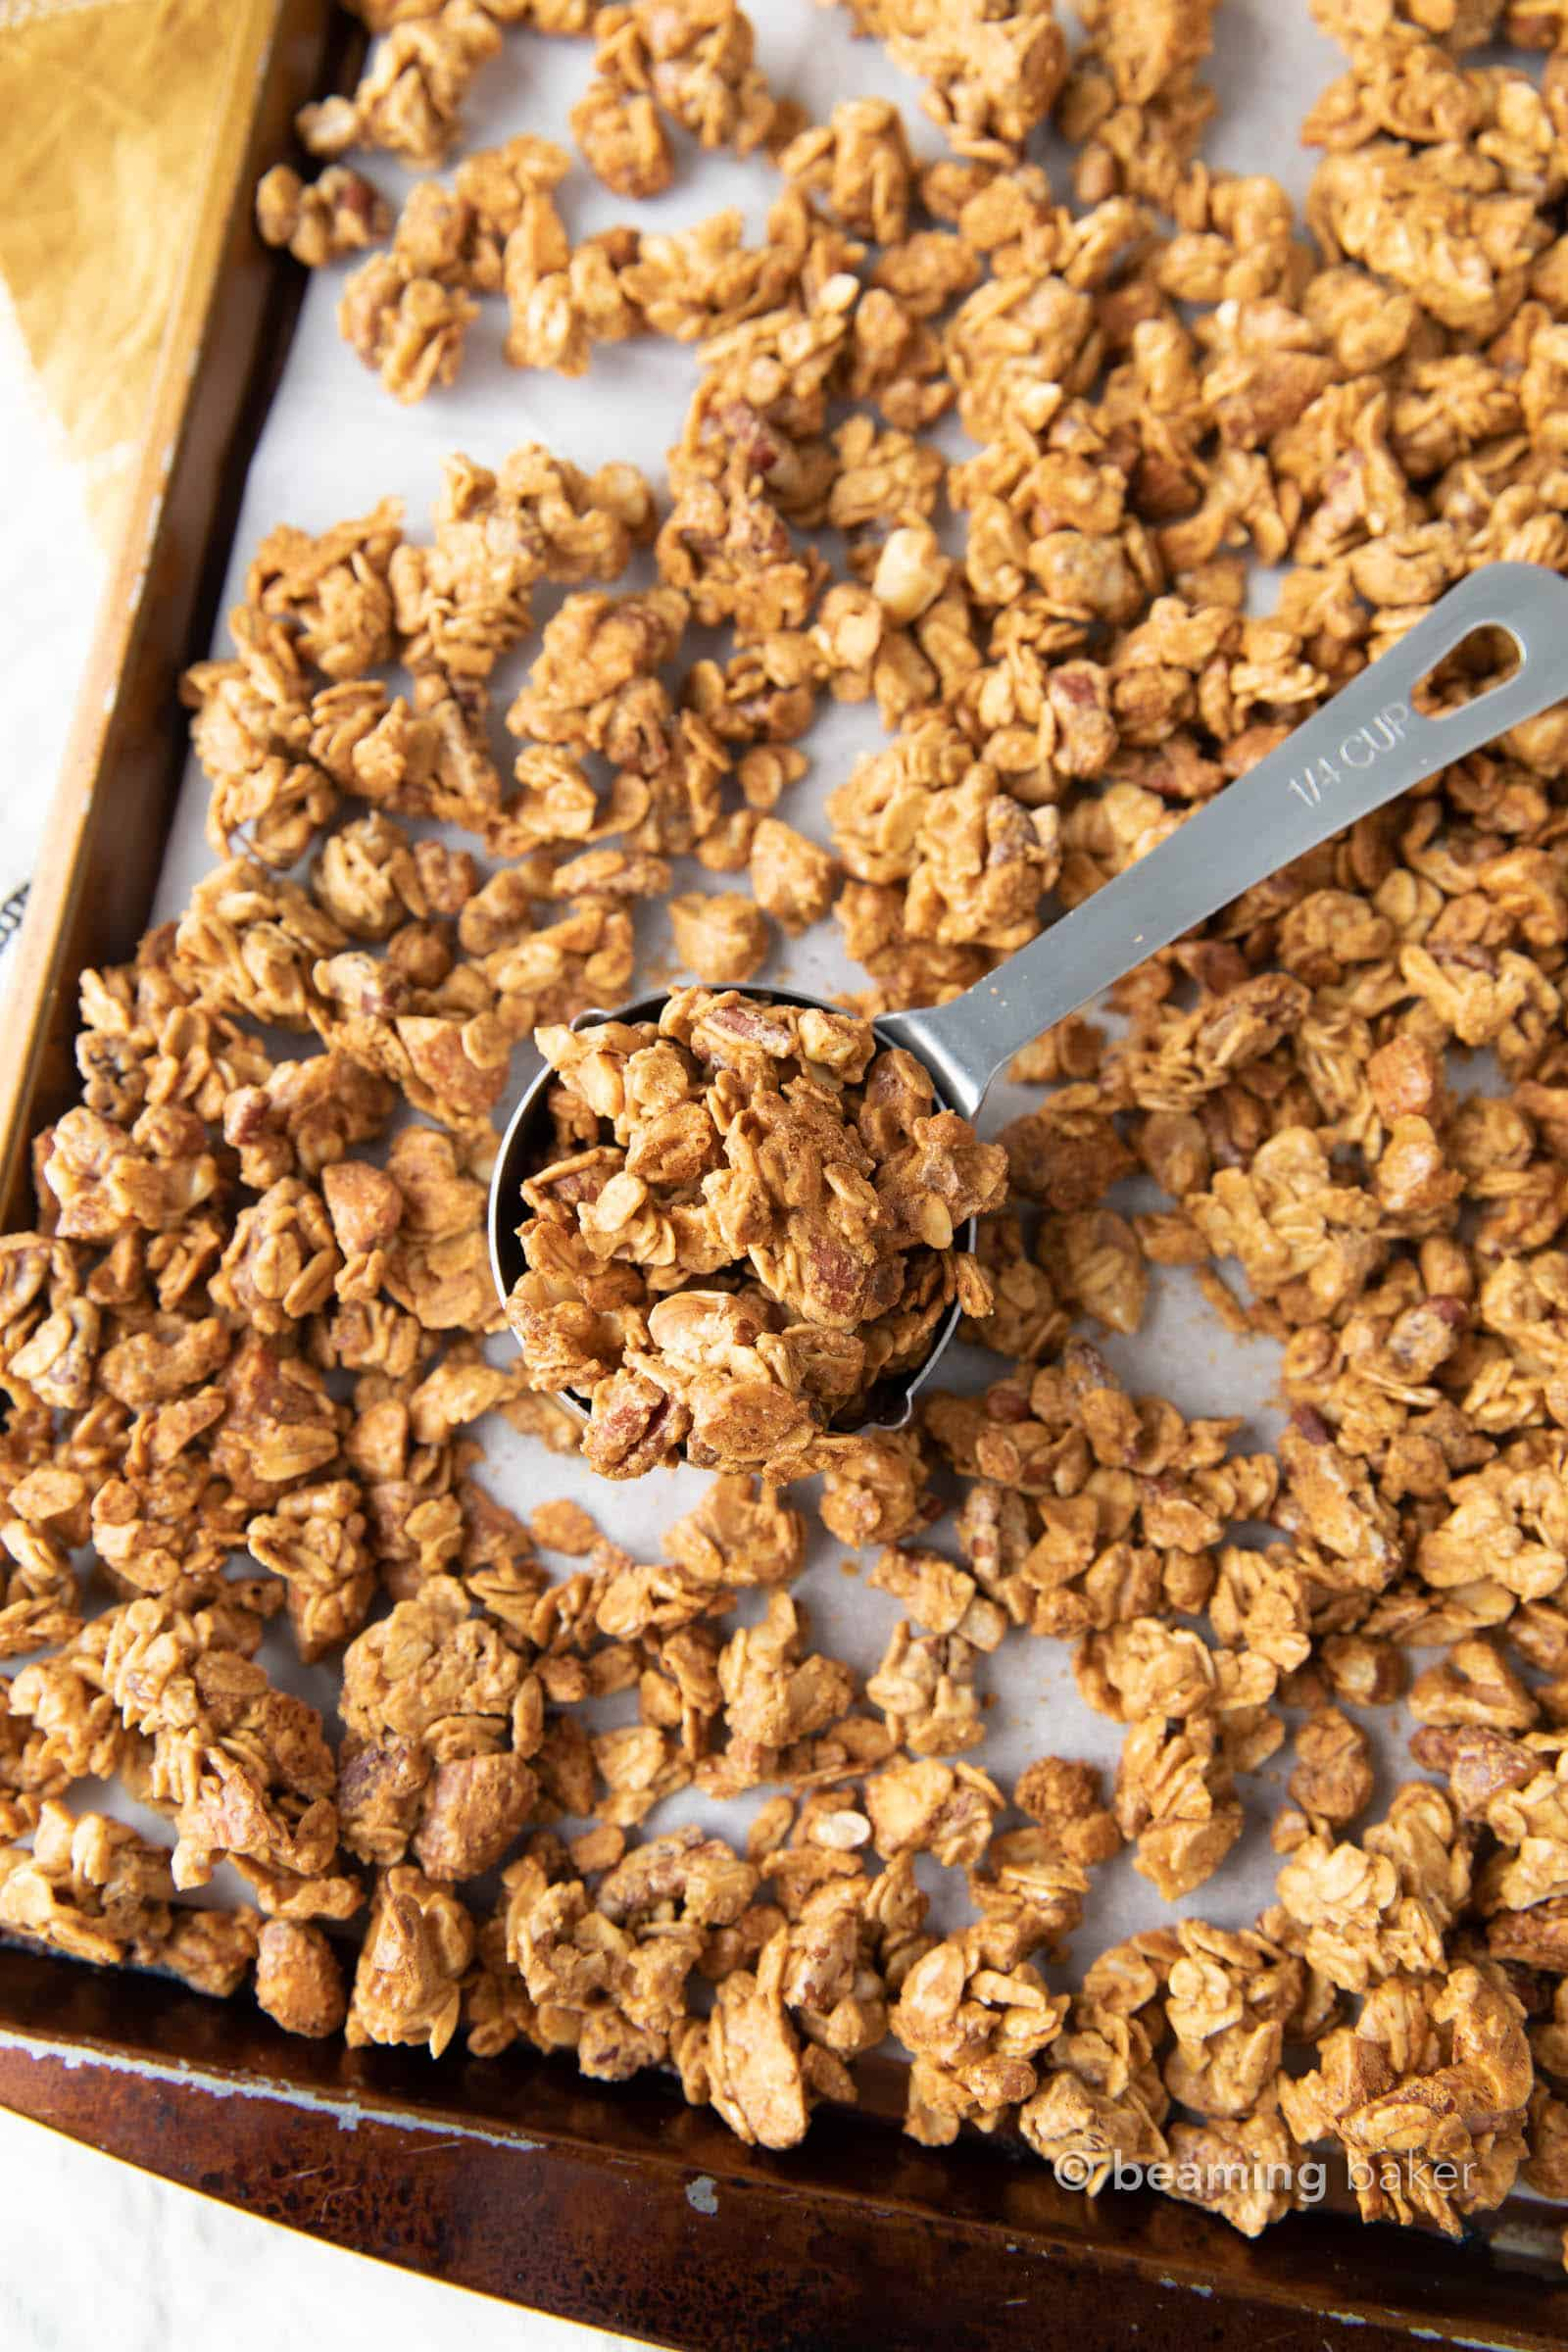 4 Ingredient Almond Butter Granola: this super easy almond butter granola recipe calls for just 4 ingredients and a few mins of prep! Healthy almond butter granola was never so easy! #AlmondButter #Granola #Healthy #Recipe | Recipe at BeamingBaker.com